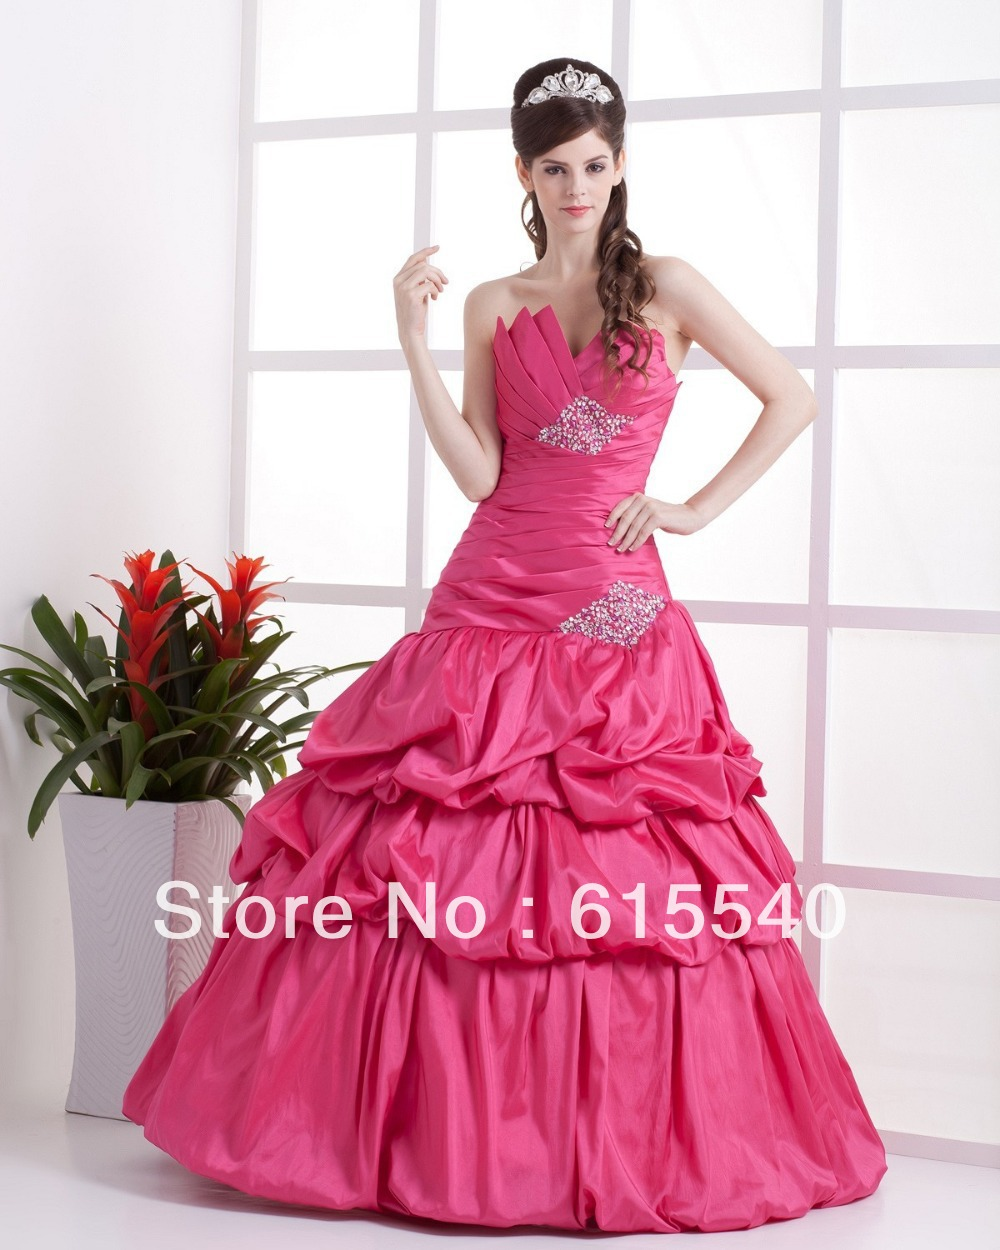 Ugly Prom Dresses Ivory With Straps Promdresses Cute Cheap Ball Gown